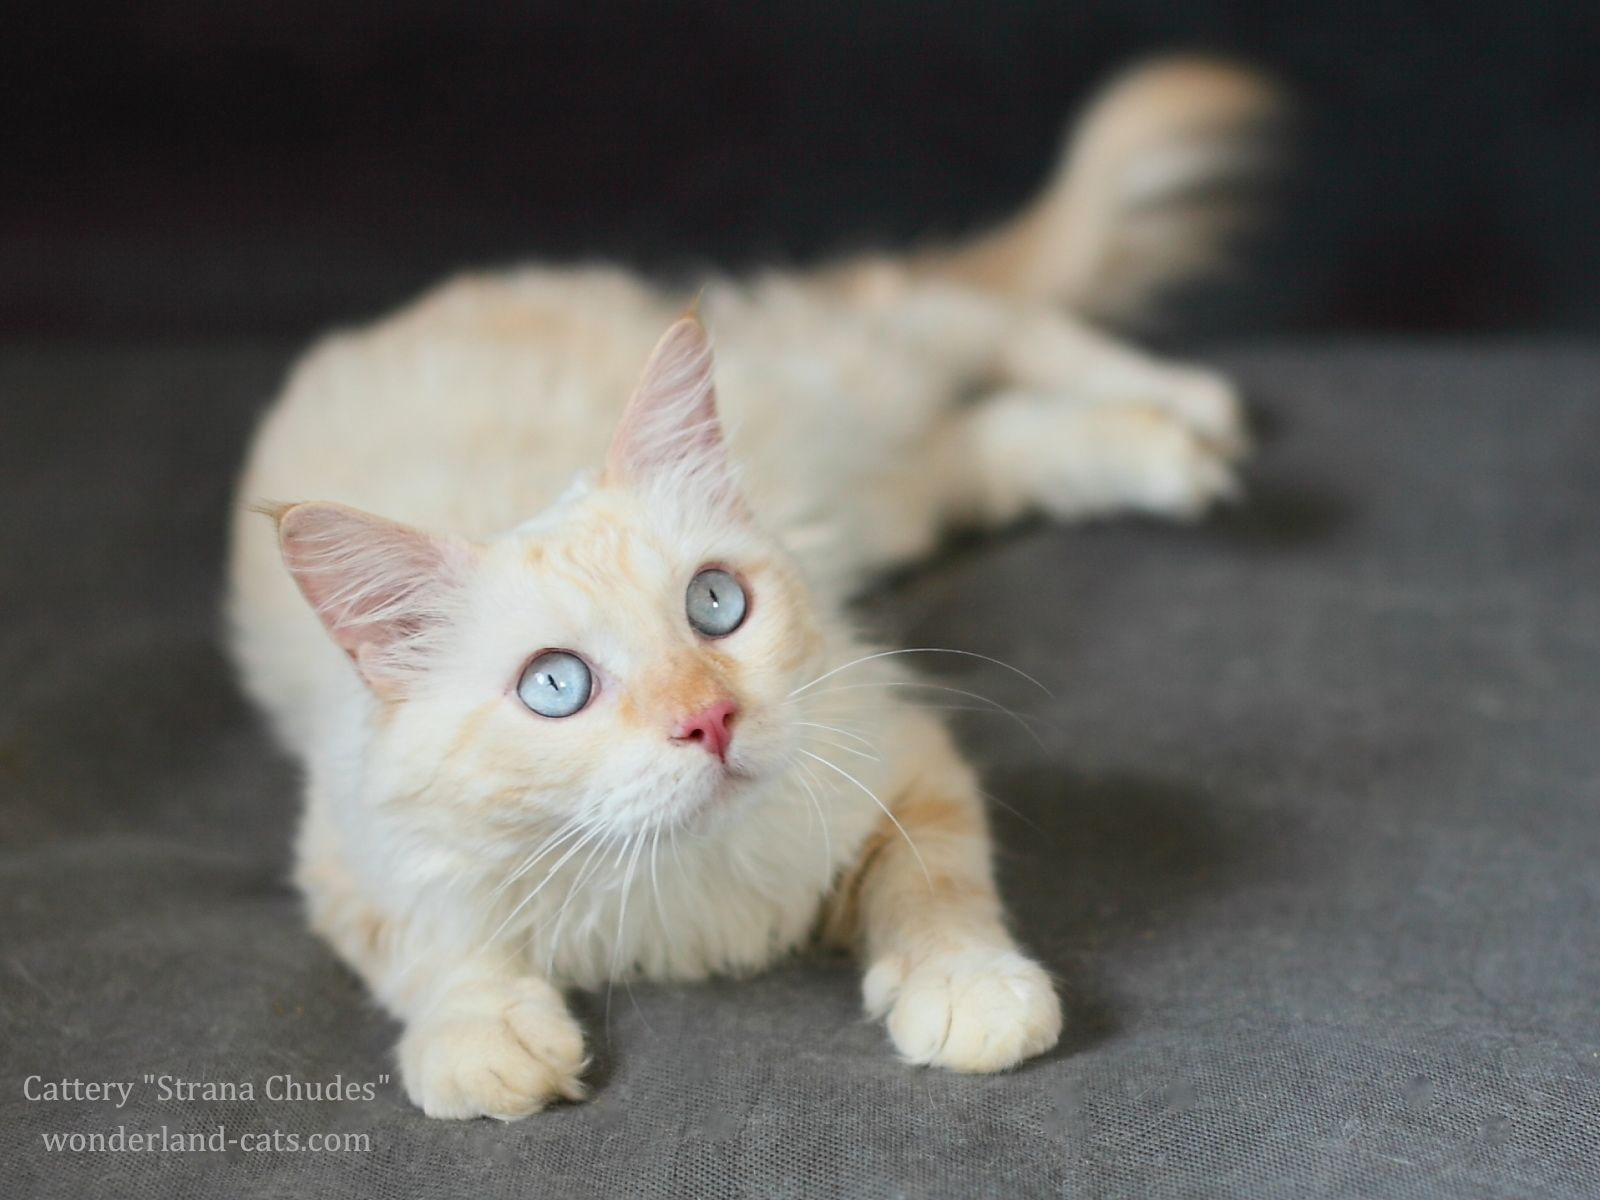 Neva Masquerade Beautiful Cat Color Cream Point Blue Eyes In The Cattery Strana Chudes You Can Choose Beautiful Hy Cats Pretty Cats Siberian Cats For Sale